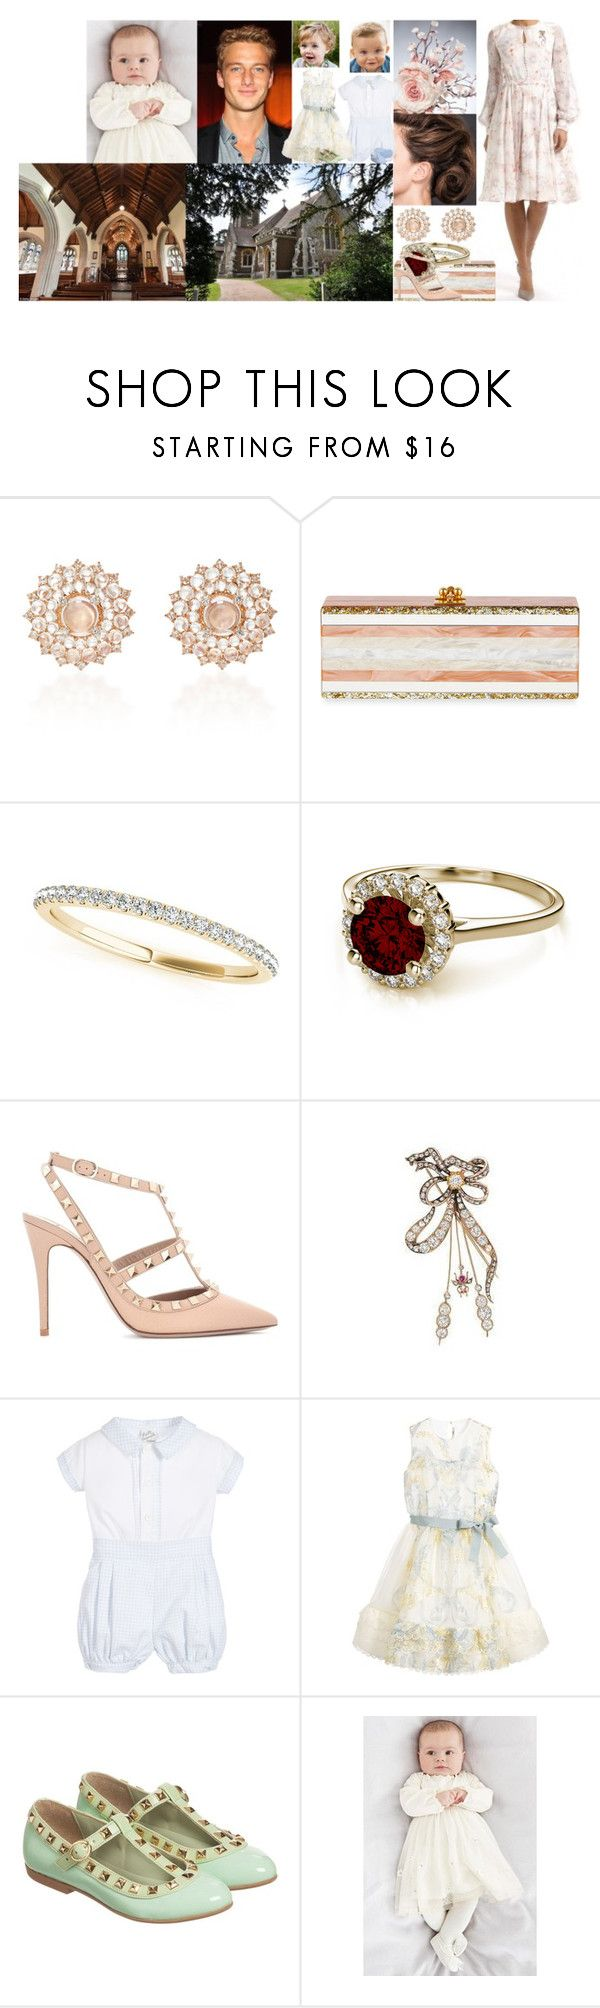 """""""Anne, Daniel, katharina and Konstantin Winter at the christening of their niece and cousin, Princess Frances of Clarence"""" by charlottedebora ❤ liked on Polyvore featuring Rachel Trevor-Morgan, Beulah, Nam Cho, Edie Parker, Allurez, Valentino, GALA, Fendi and step2wo"""